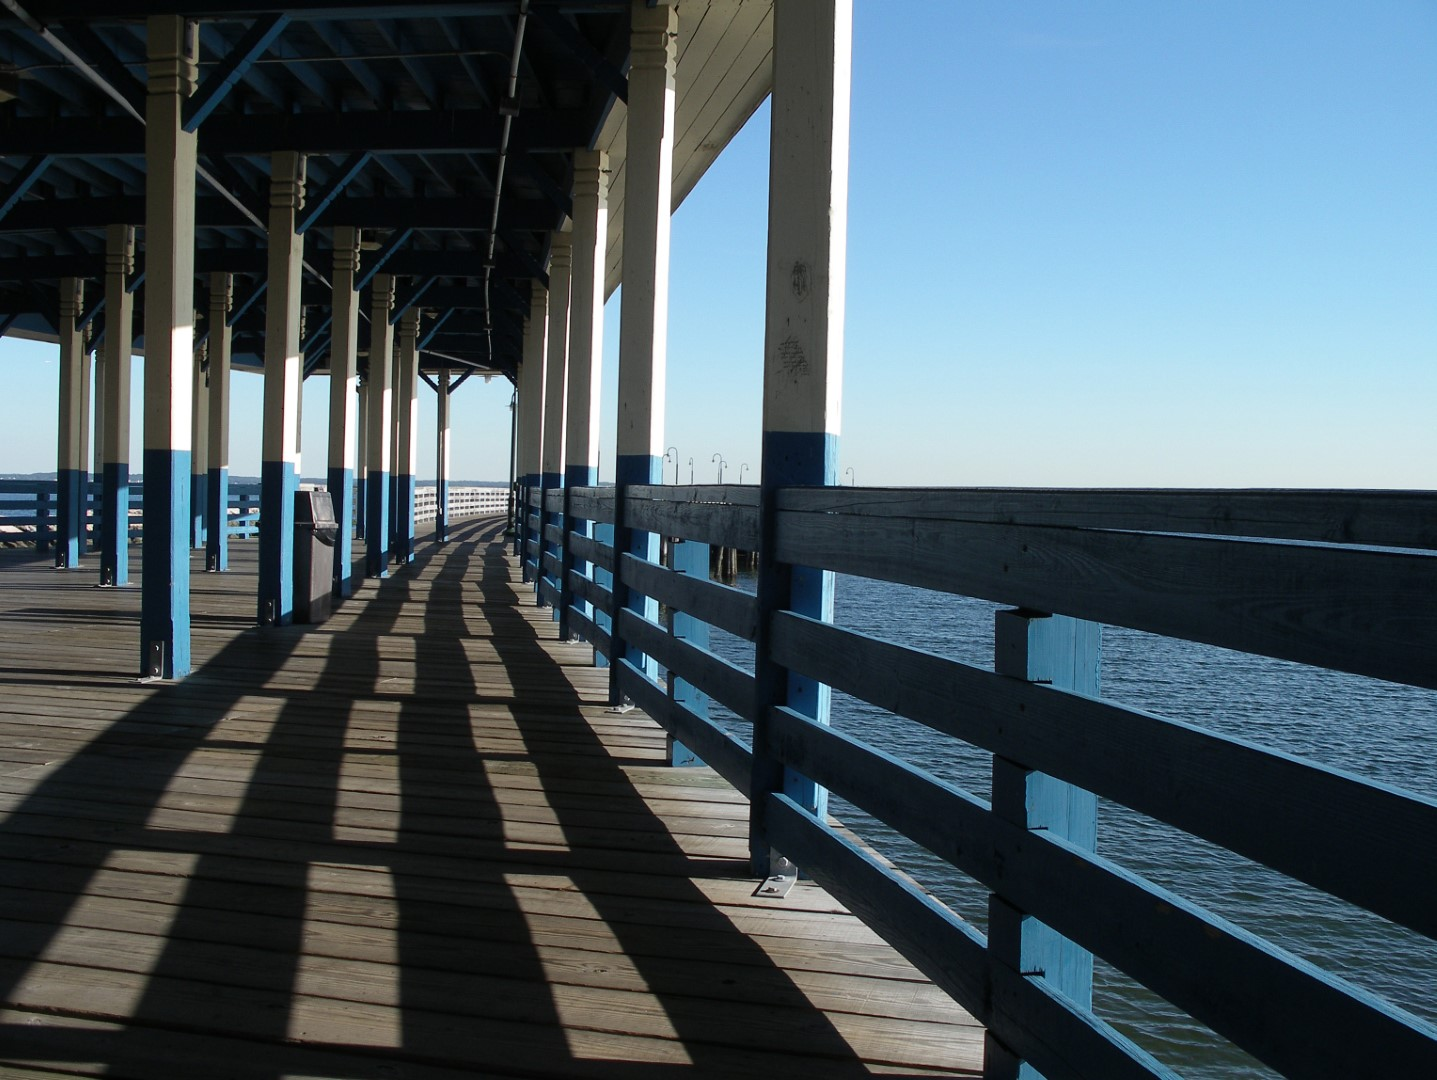 beautiful old pier with shadows